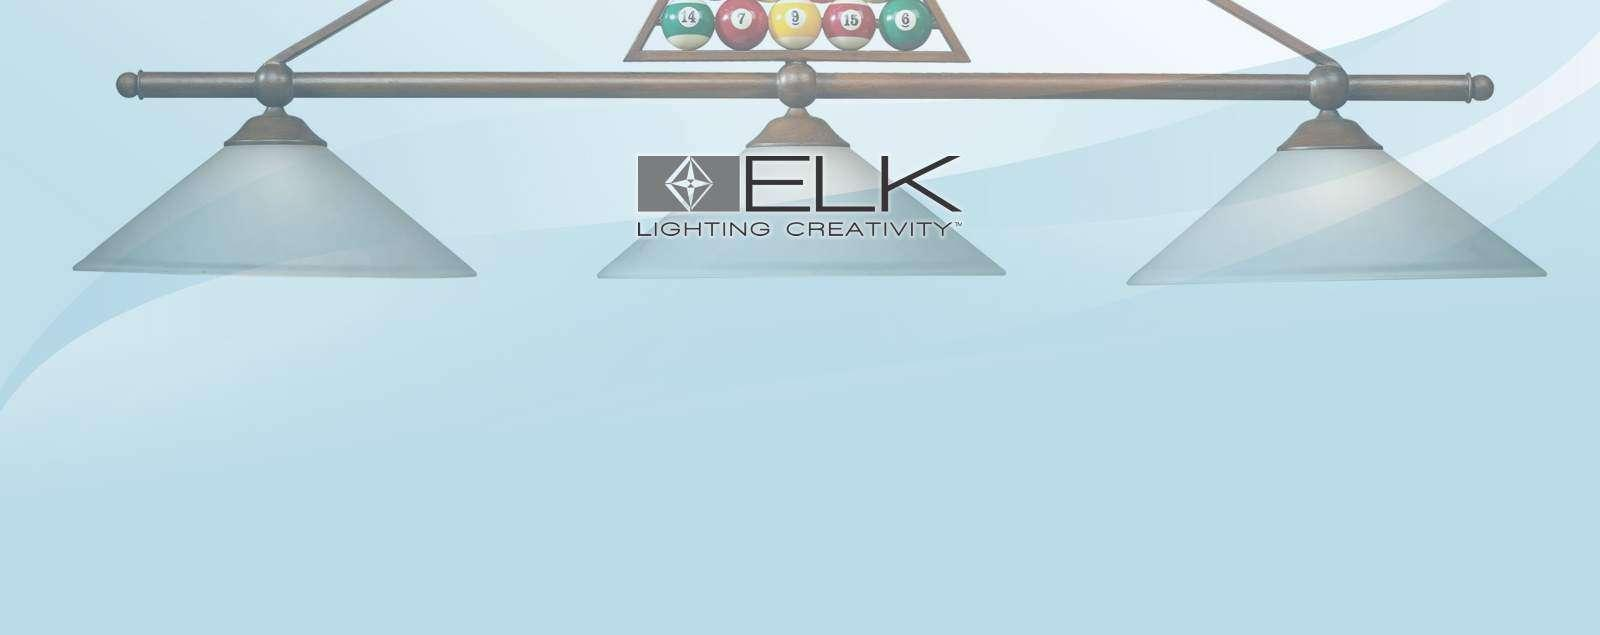 Elk Lighting - Outdoor Wall Mounts